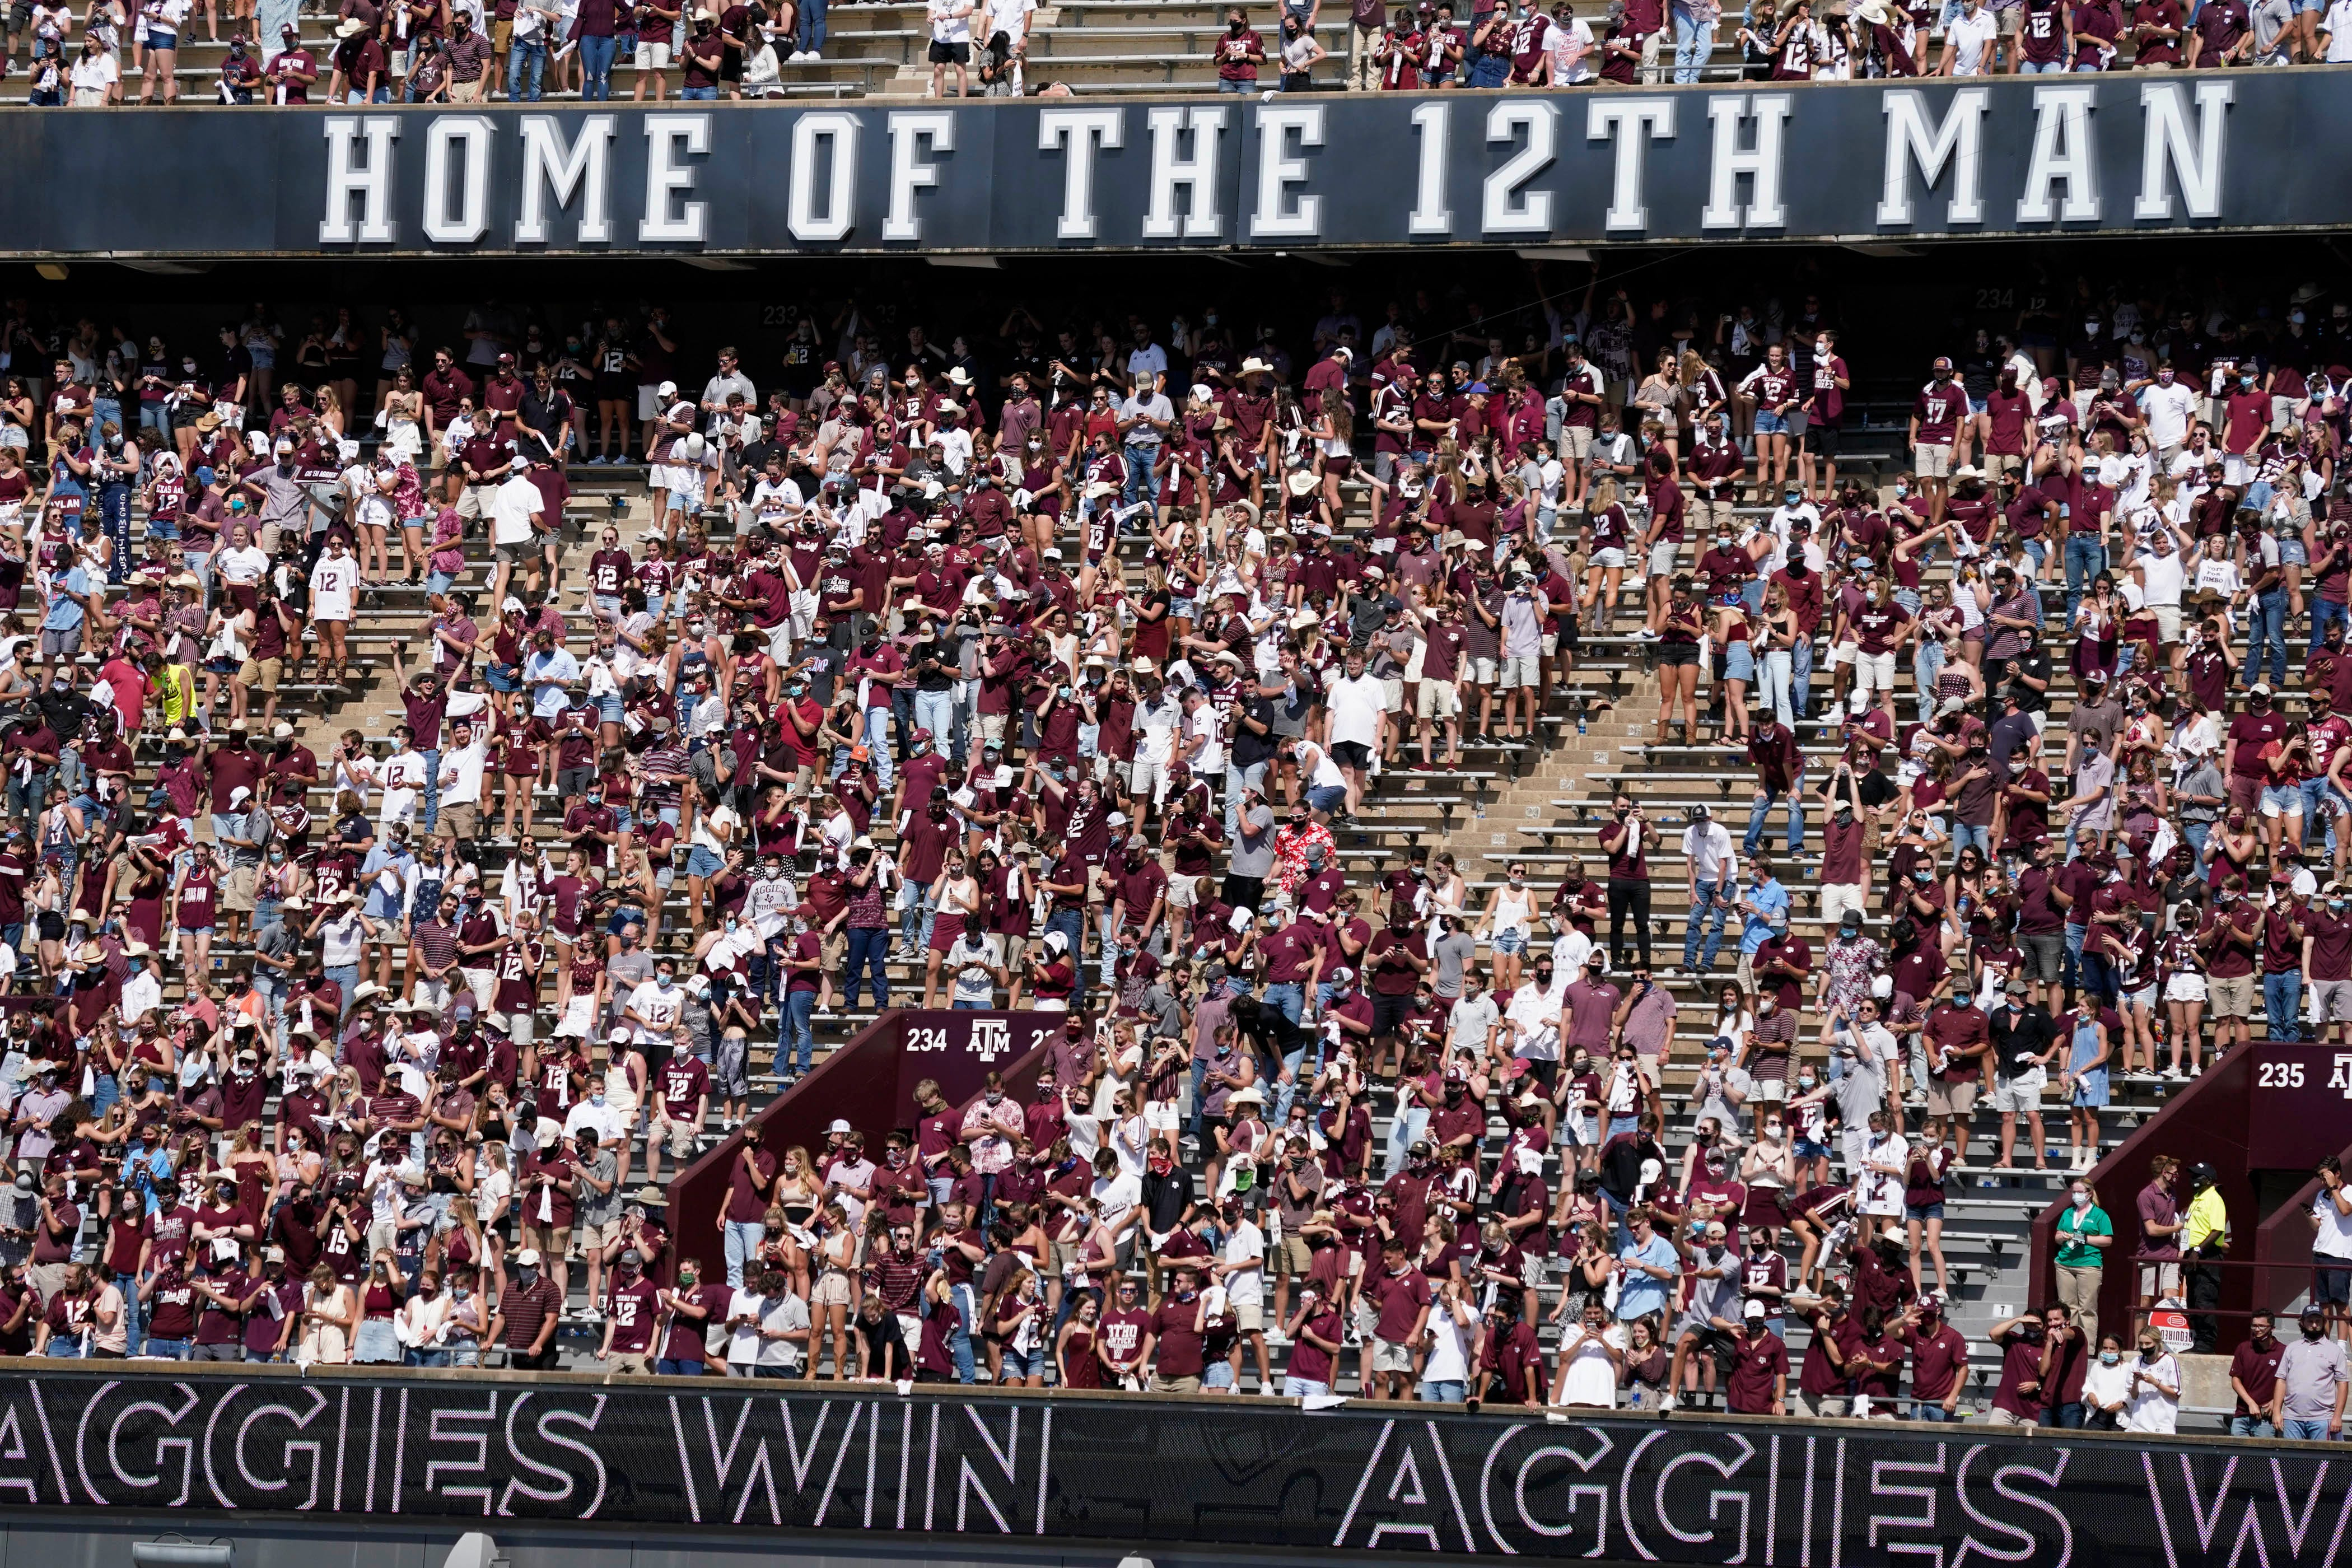 Best celebration photos from Texas A&M's upset win over Florida